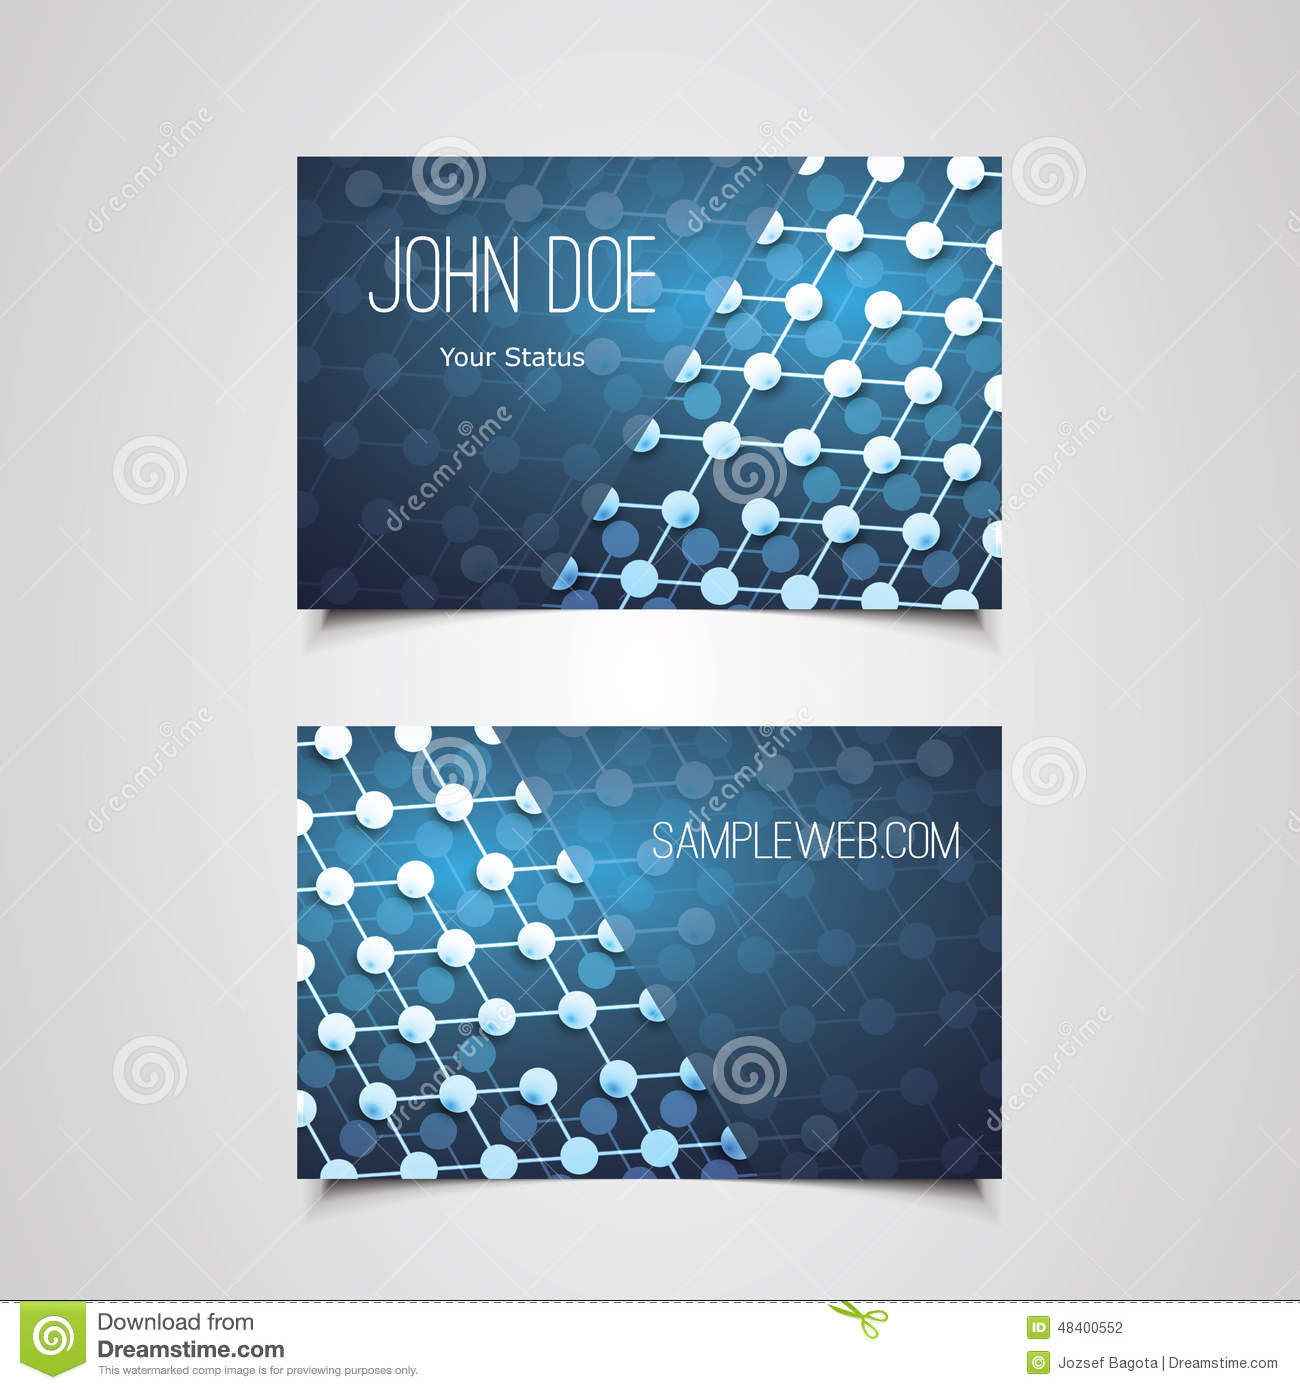 Business Card Template With Abstract Network Connections Pattern - Networking business card template